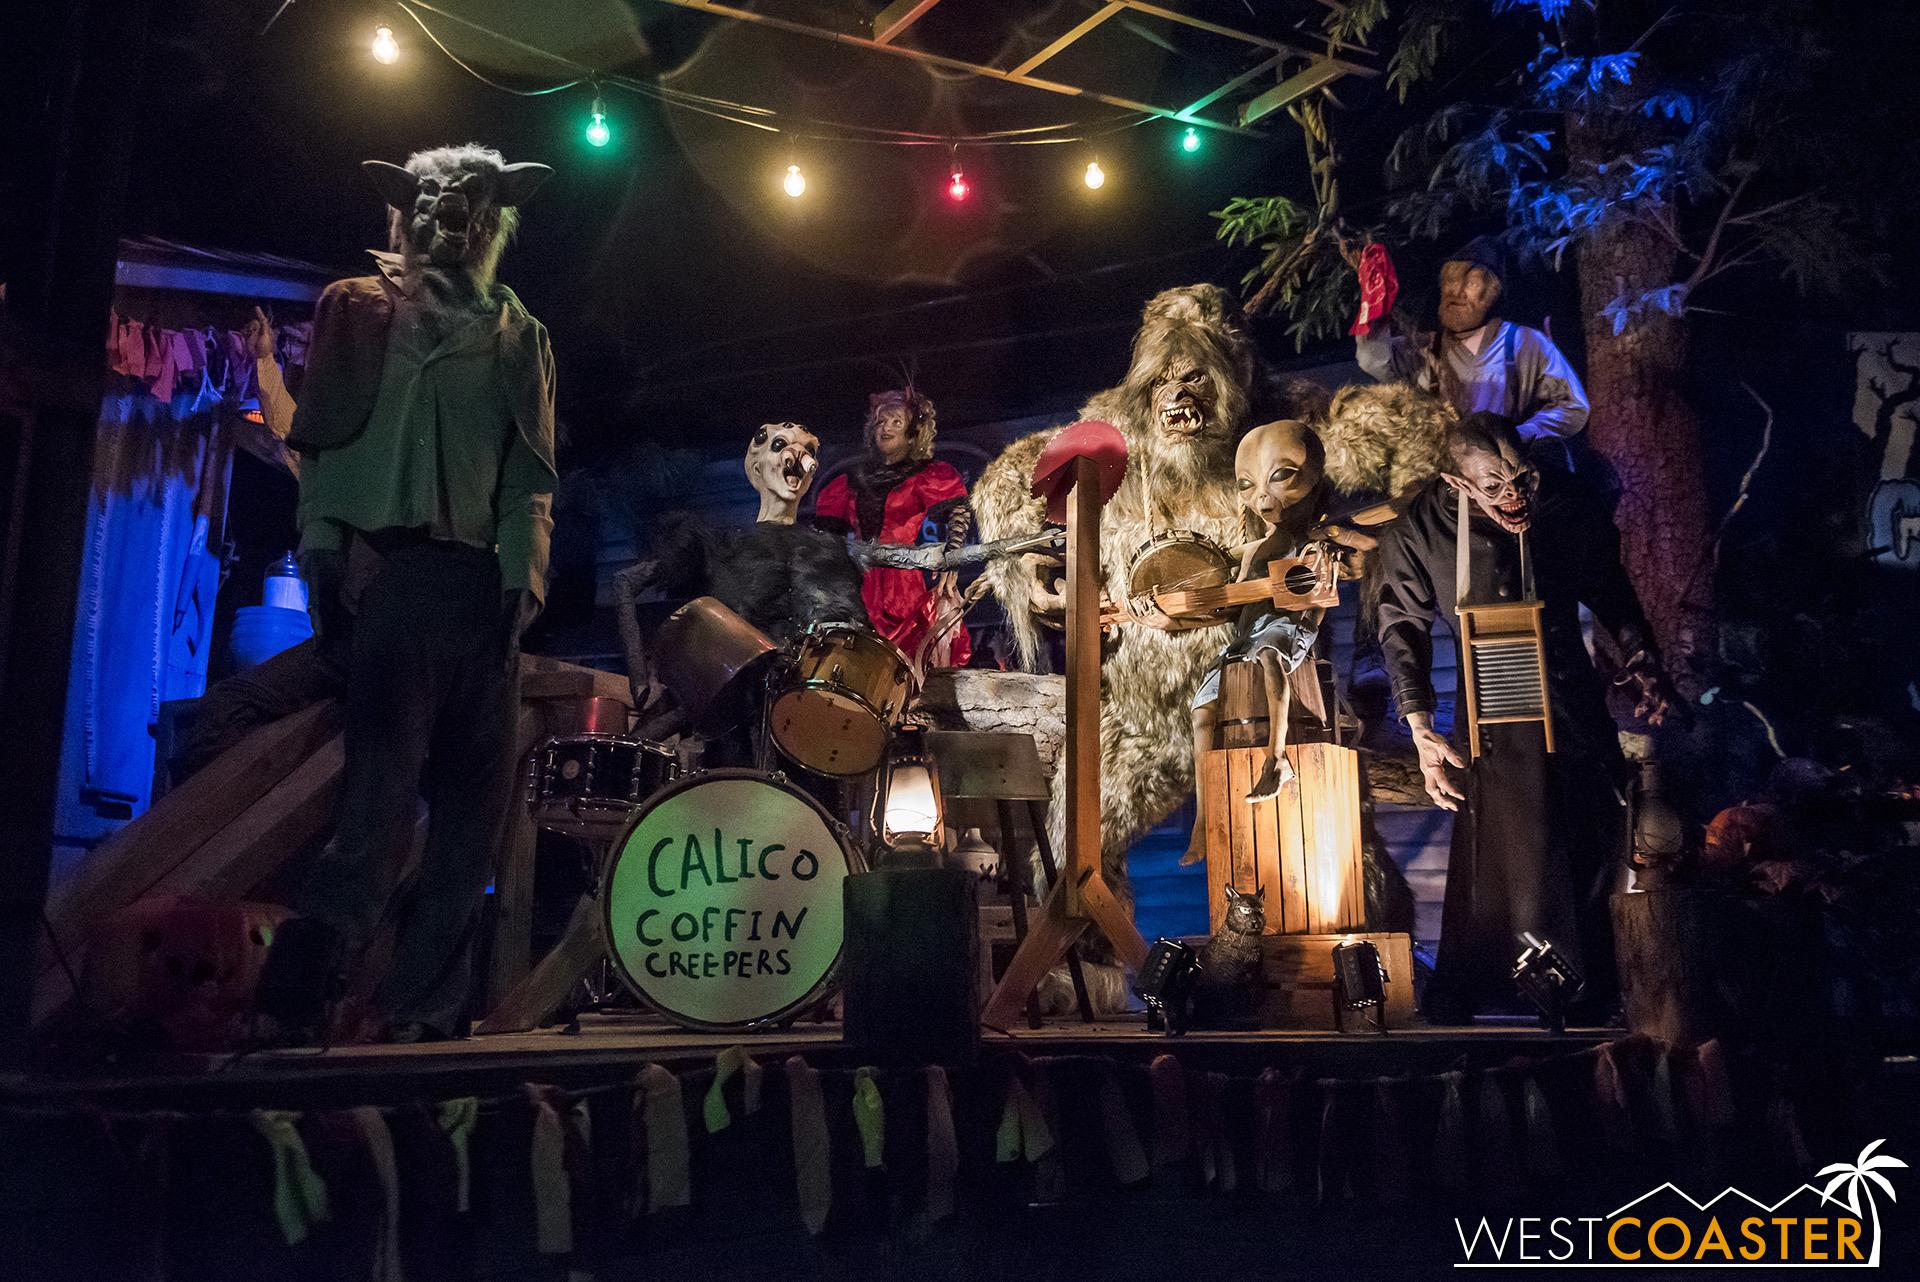 Music for the Halloween Hootenanny is provided by Krazy Kirk and the Hillbillies.